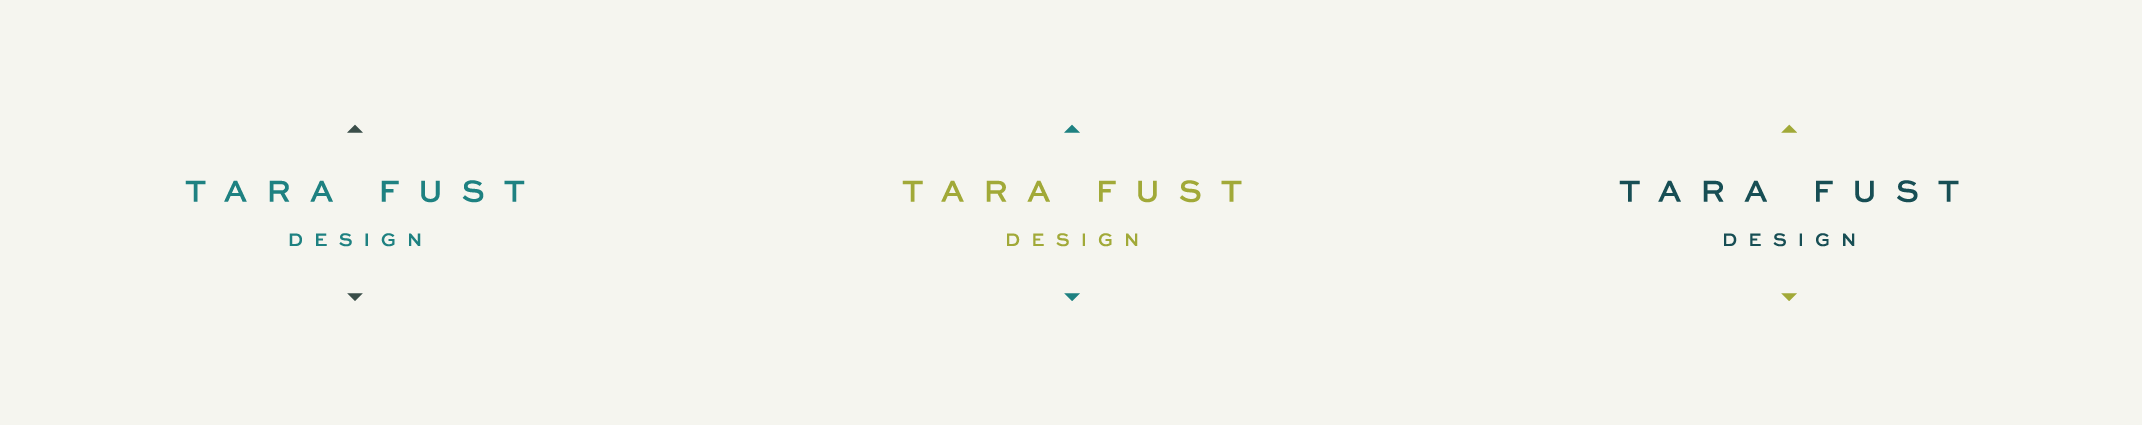 Tara-Fust-Logo_options.png